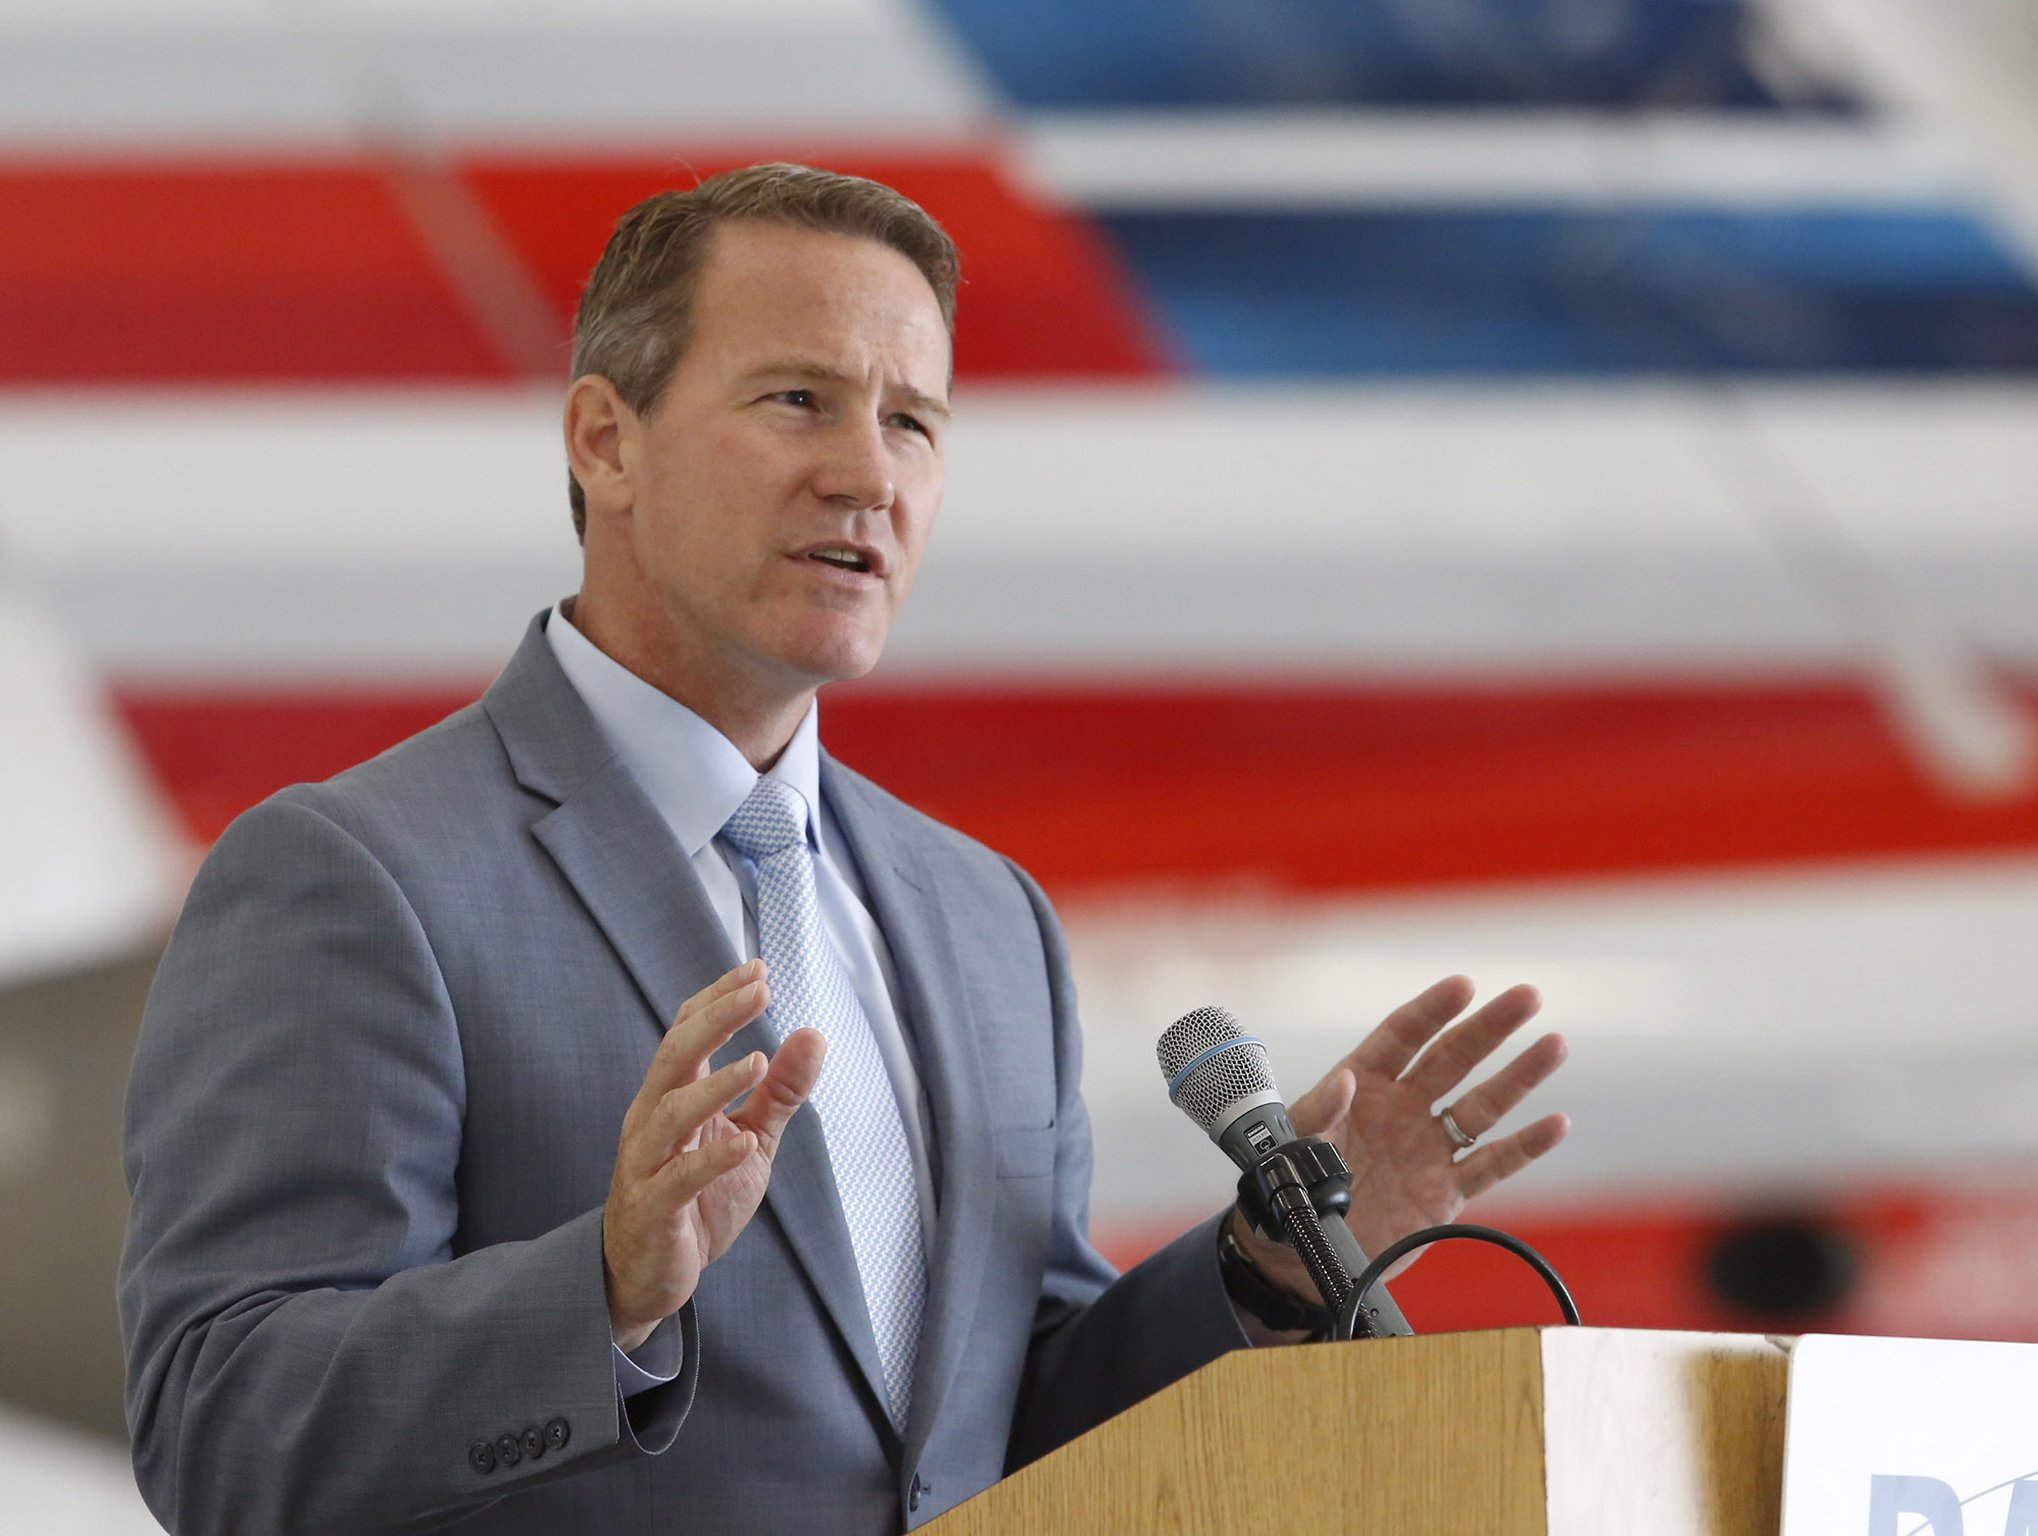 Lt. Gov. Husted to make 4 stops in the Miami Valley Wednesday in support of workforce development